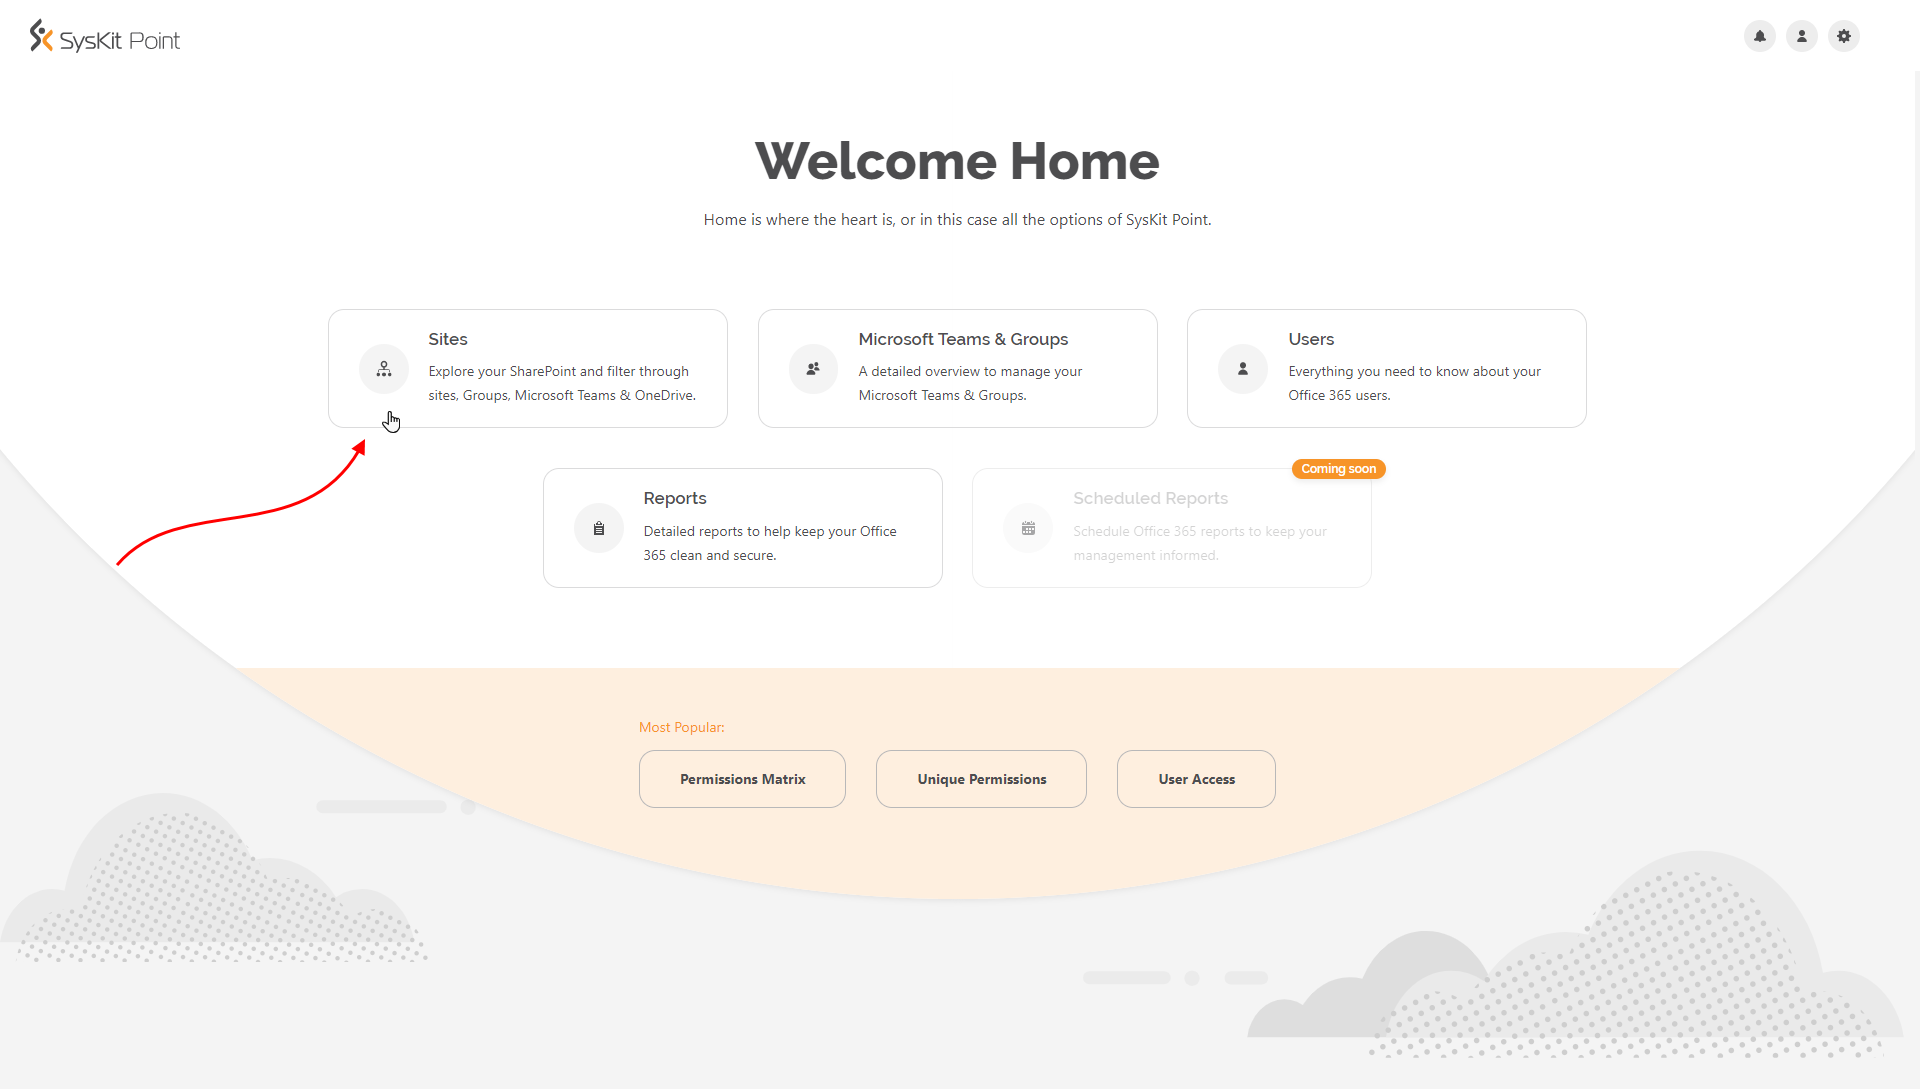 SysKit Point Home Screen - Click the Sites tile